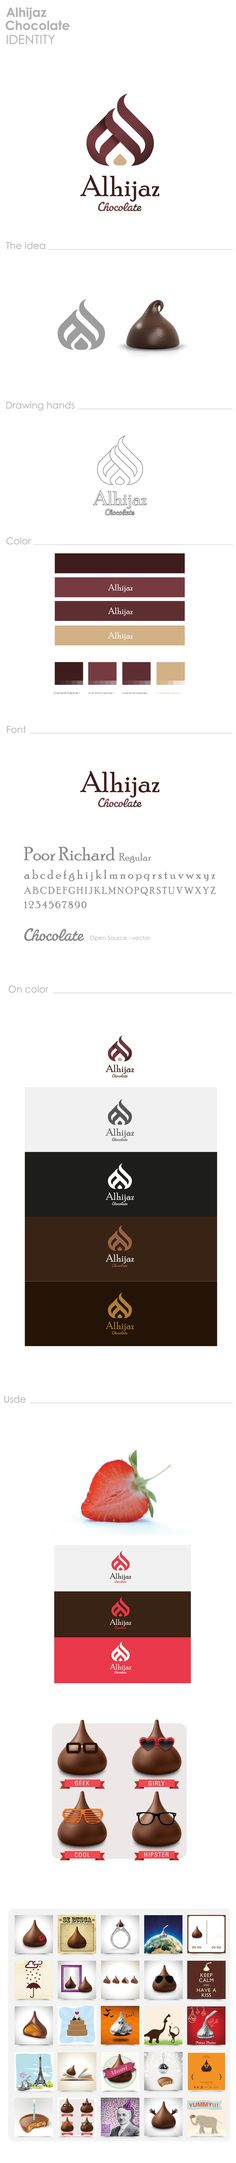 Alhijaz Chocolate by Ahmad Nabil, via Behance